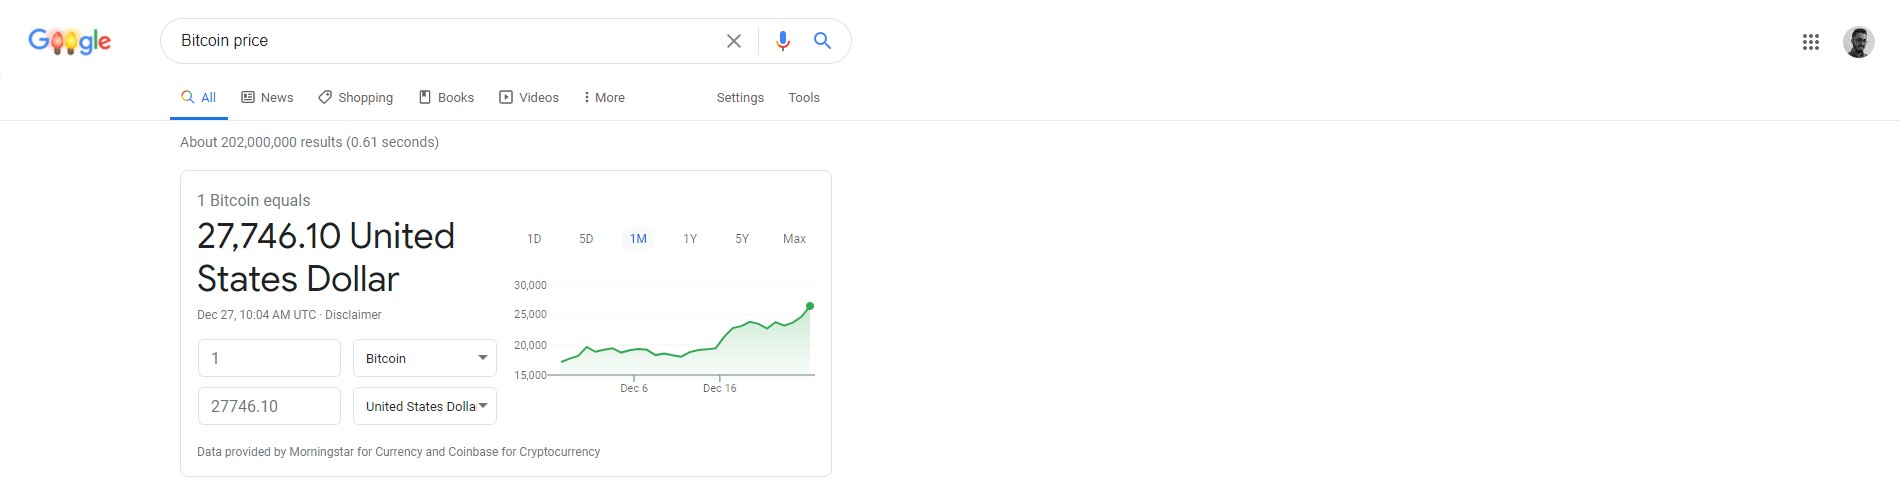 Bitcoin price on December 27, 2020 in Google search